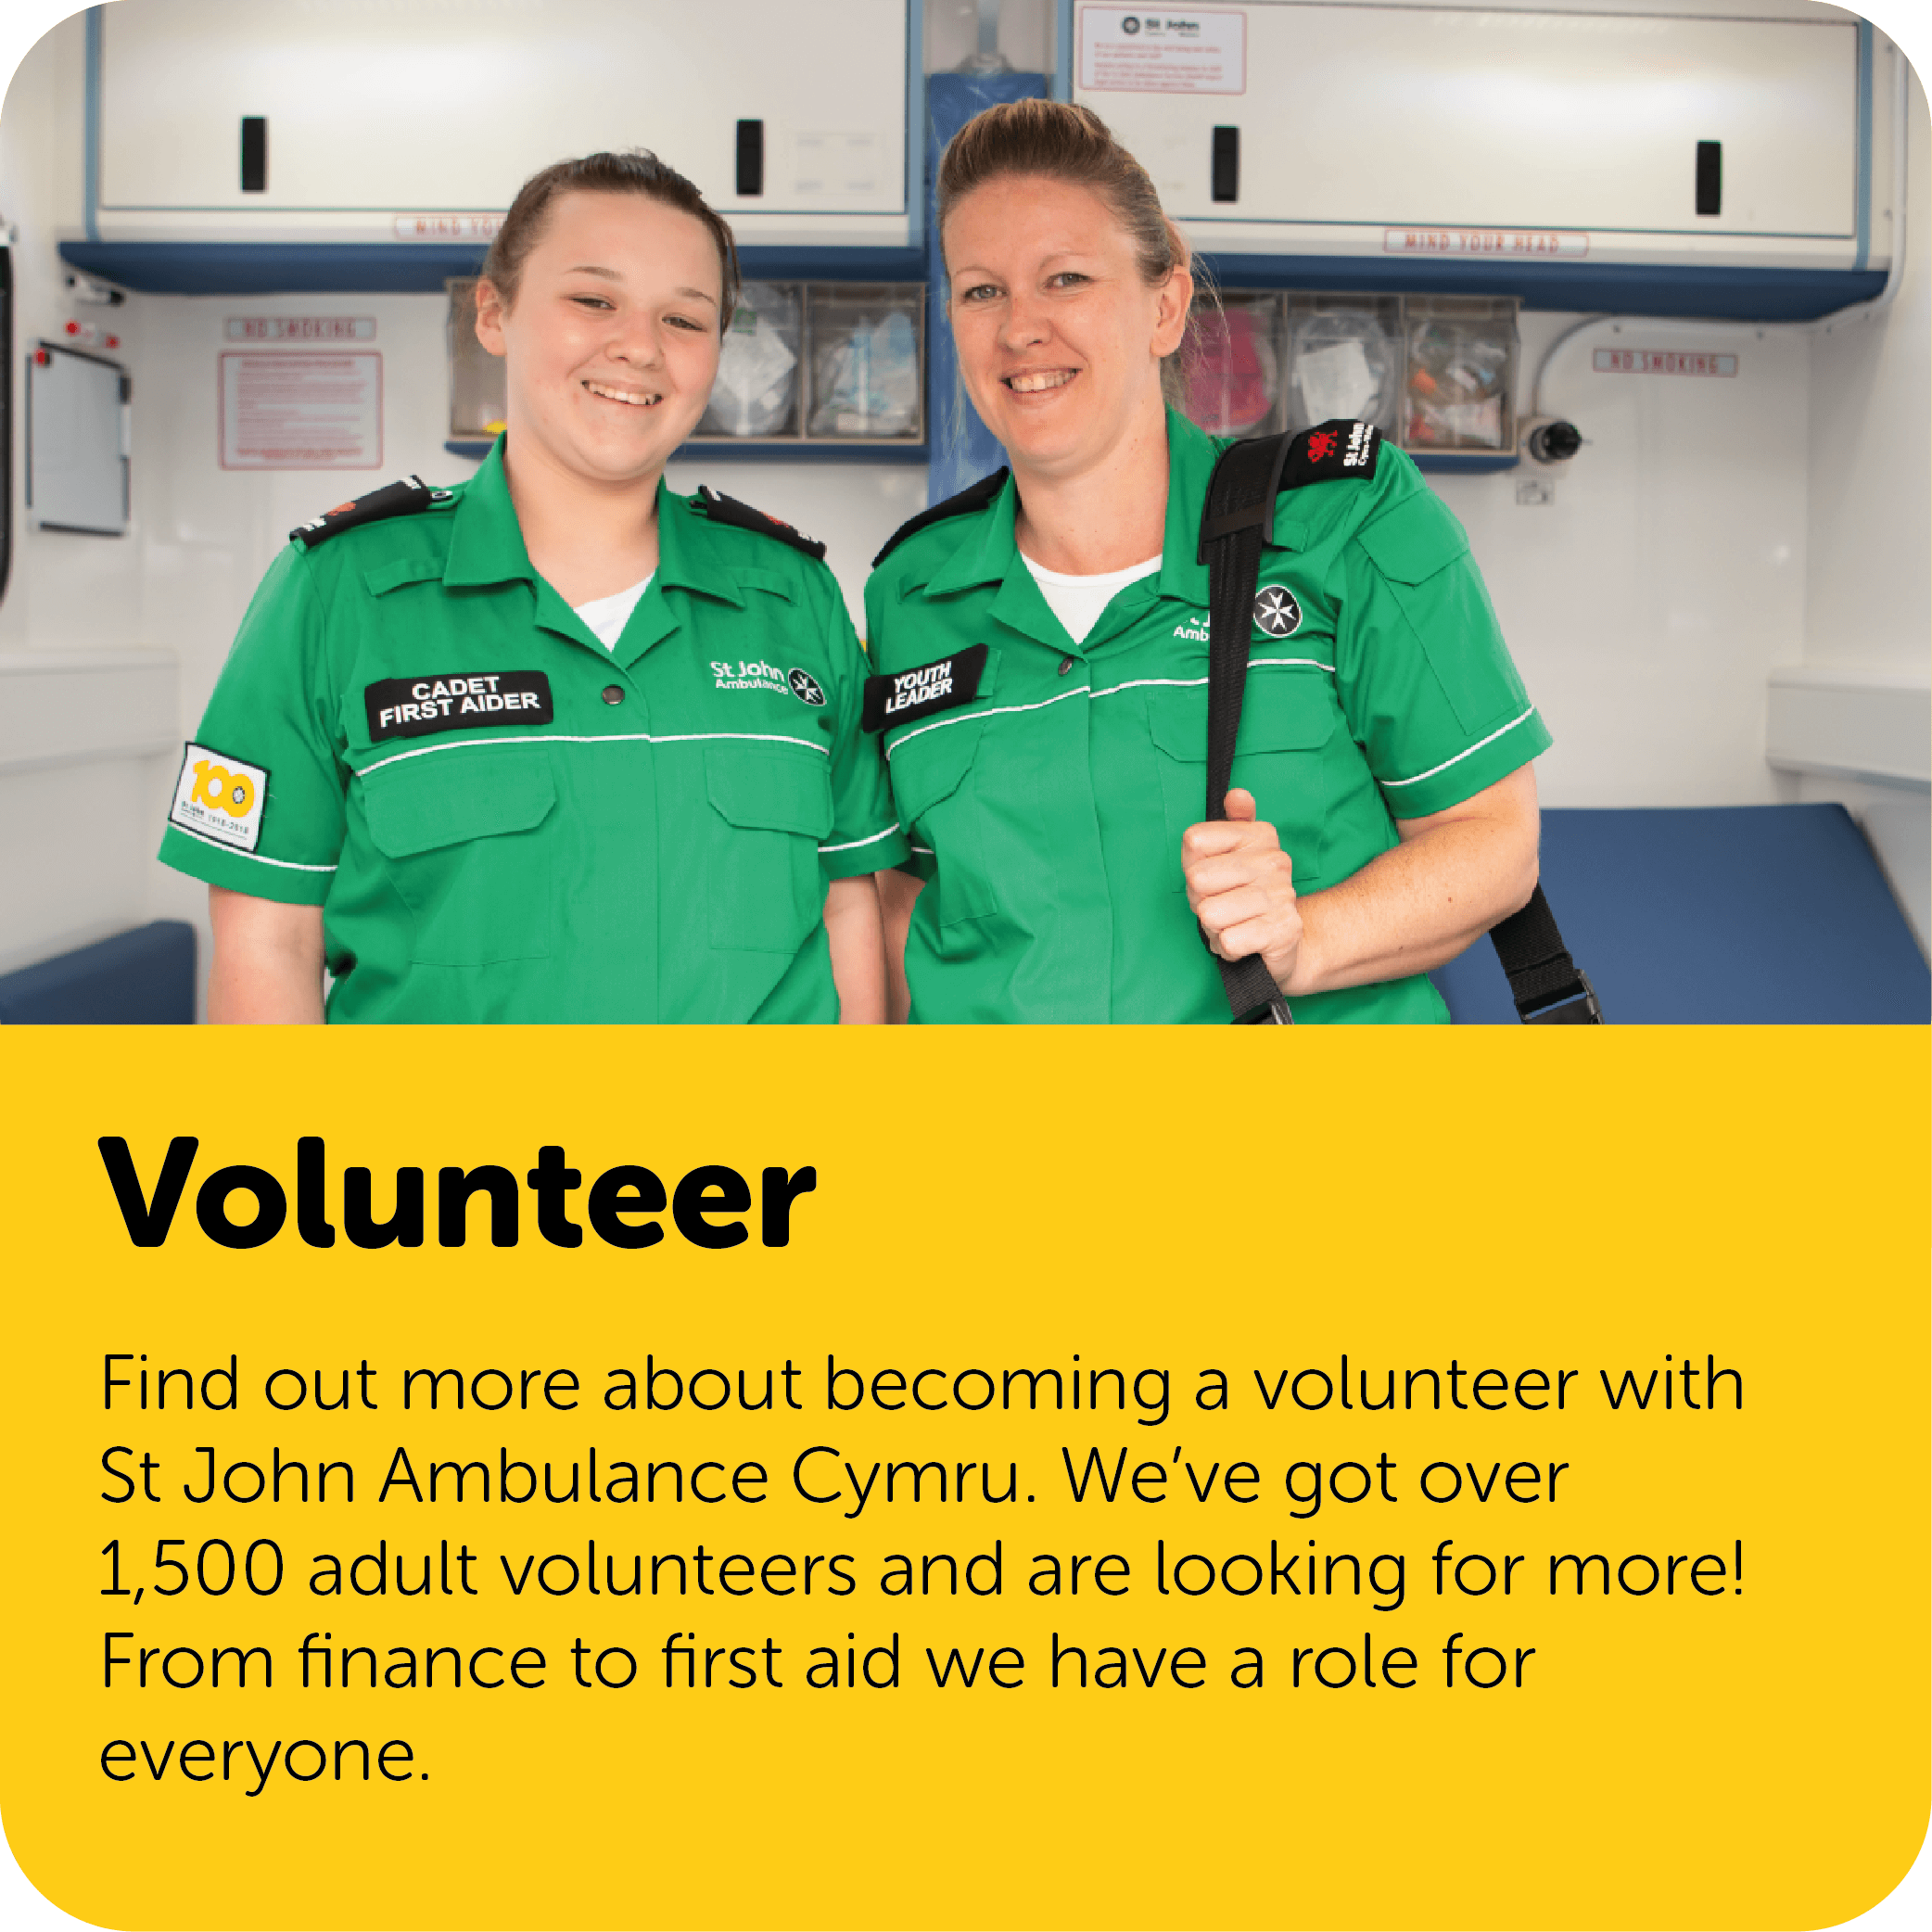 Find out more about becoming a volunteer with St John Ambulance Cymru. We've got over 1500 adult volunteers and looking for more! From finance to first aid we have a role for everyone.